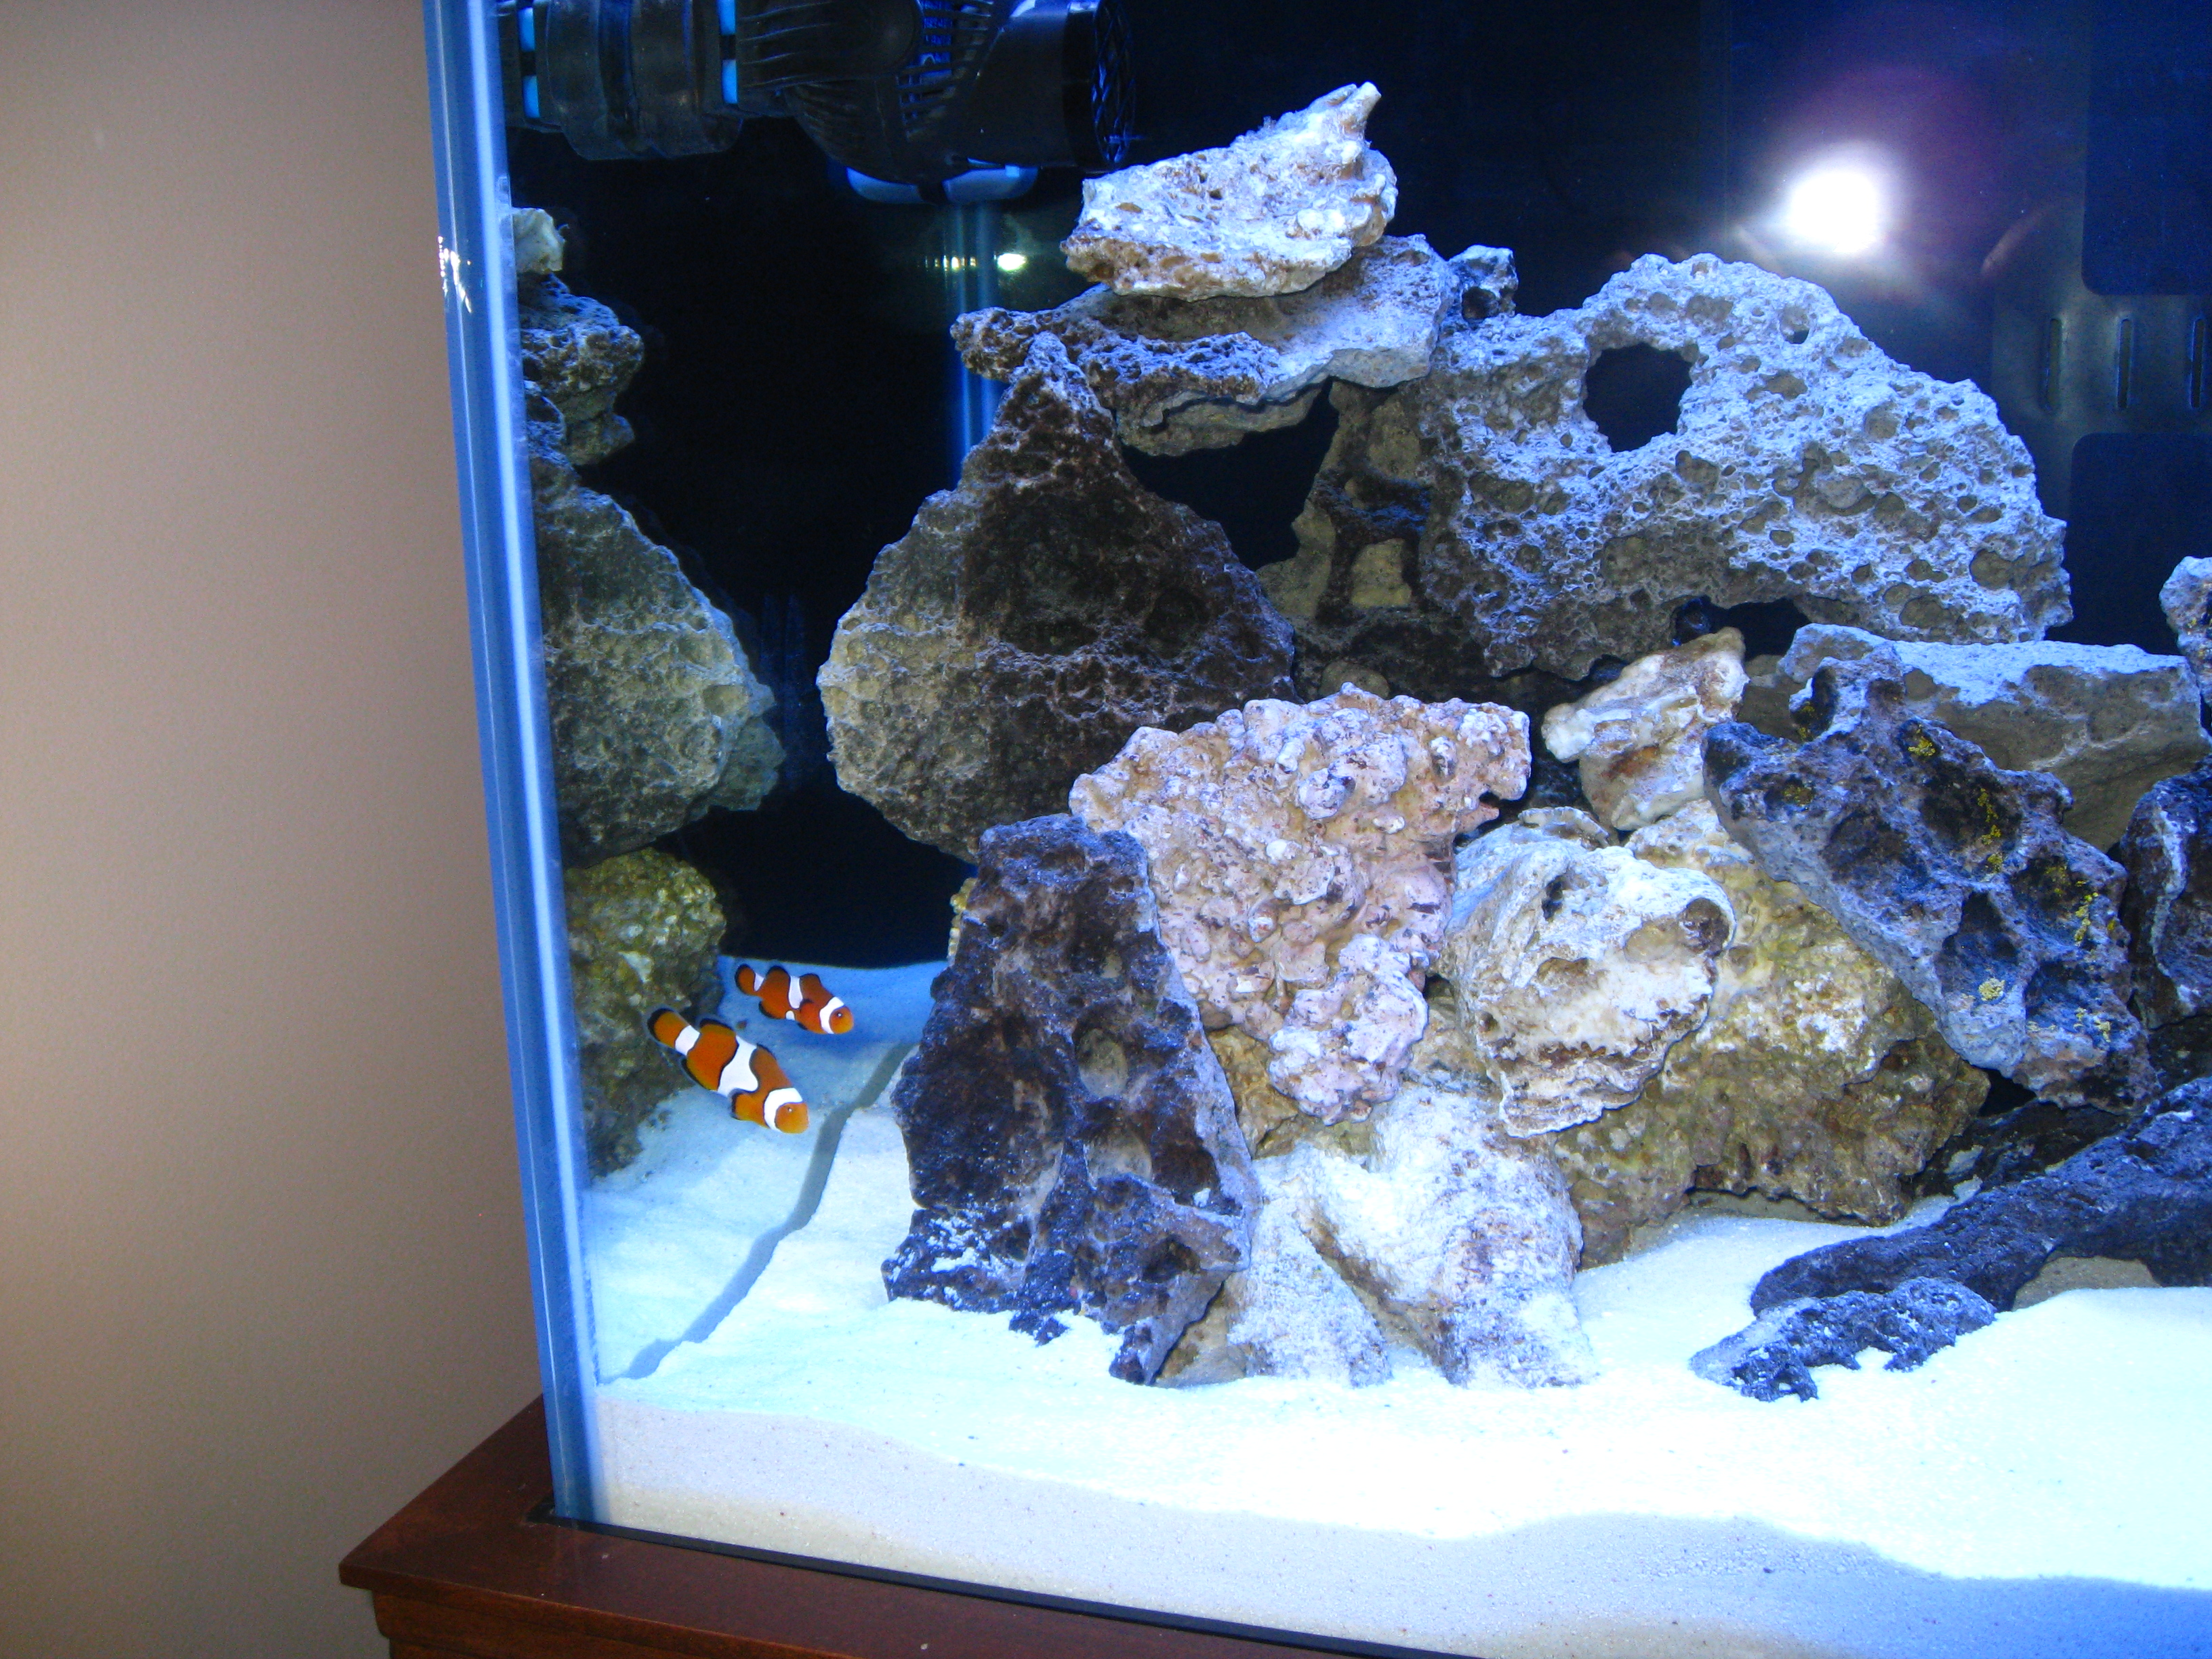 saltwater fish tank nitrate level ve been reading up and